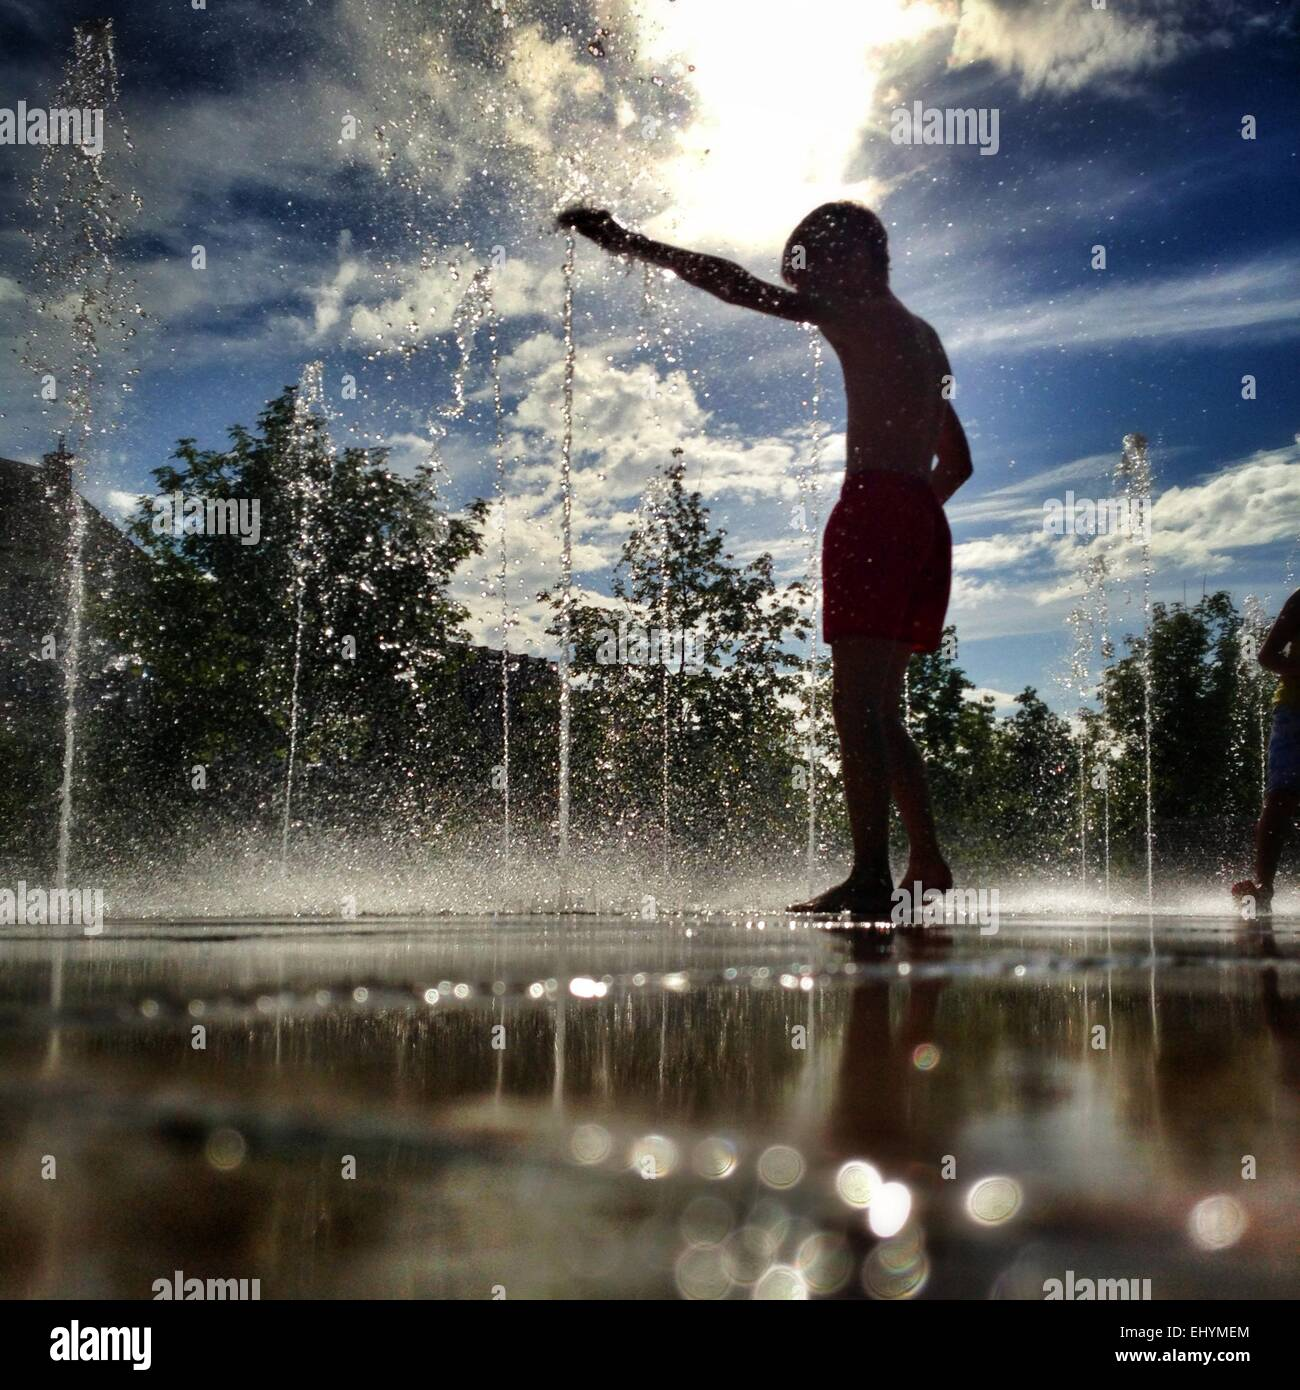 Silhouette of a boy standing in a water fountain, Niort, France - Stock Image